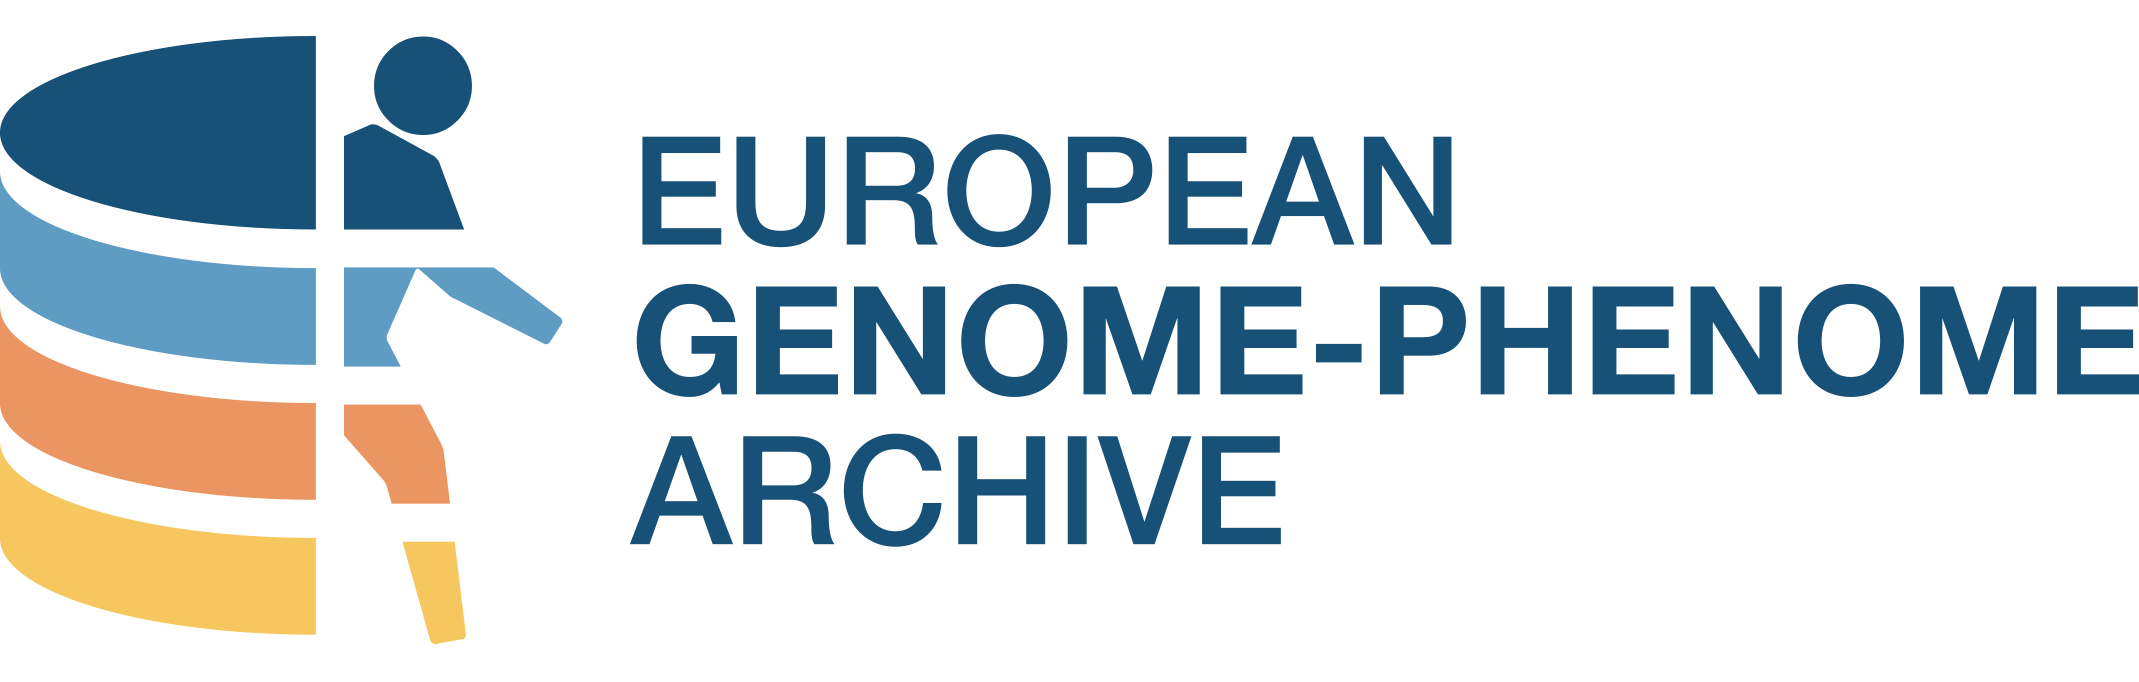 EGA European Genome-phenome Archive